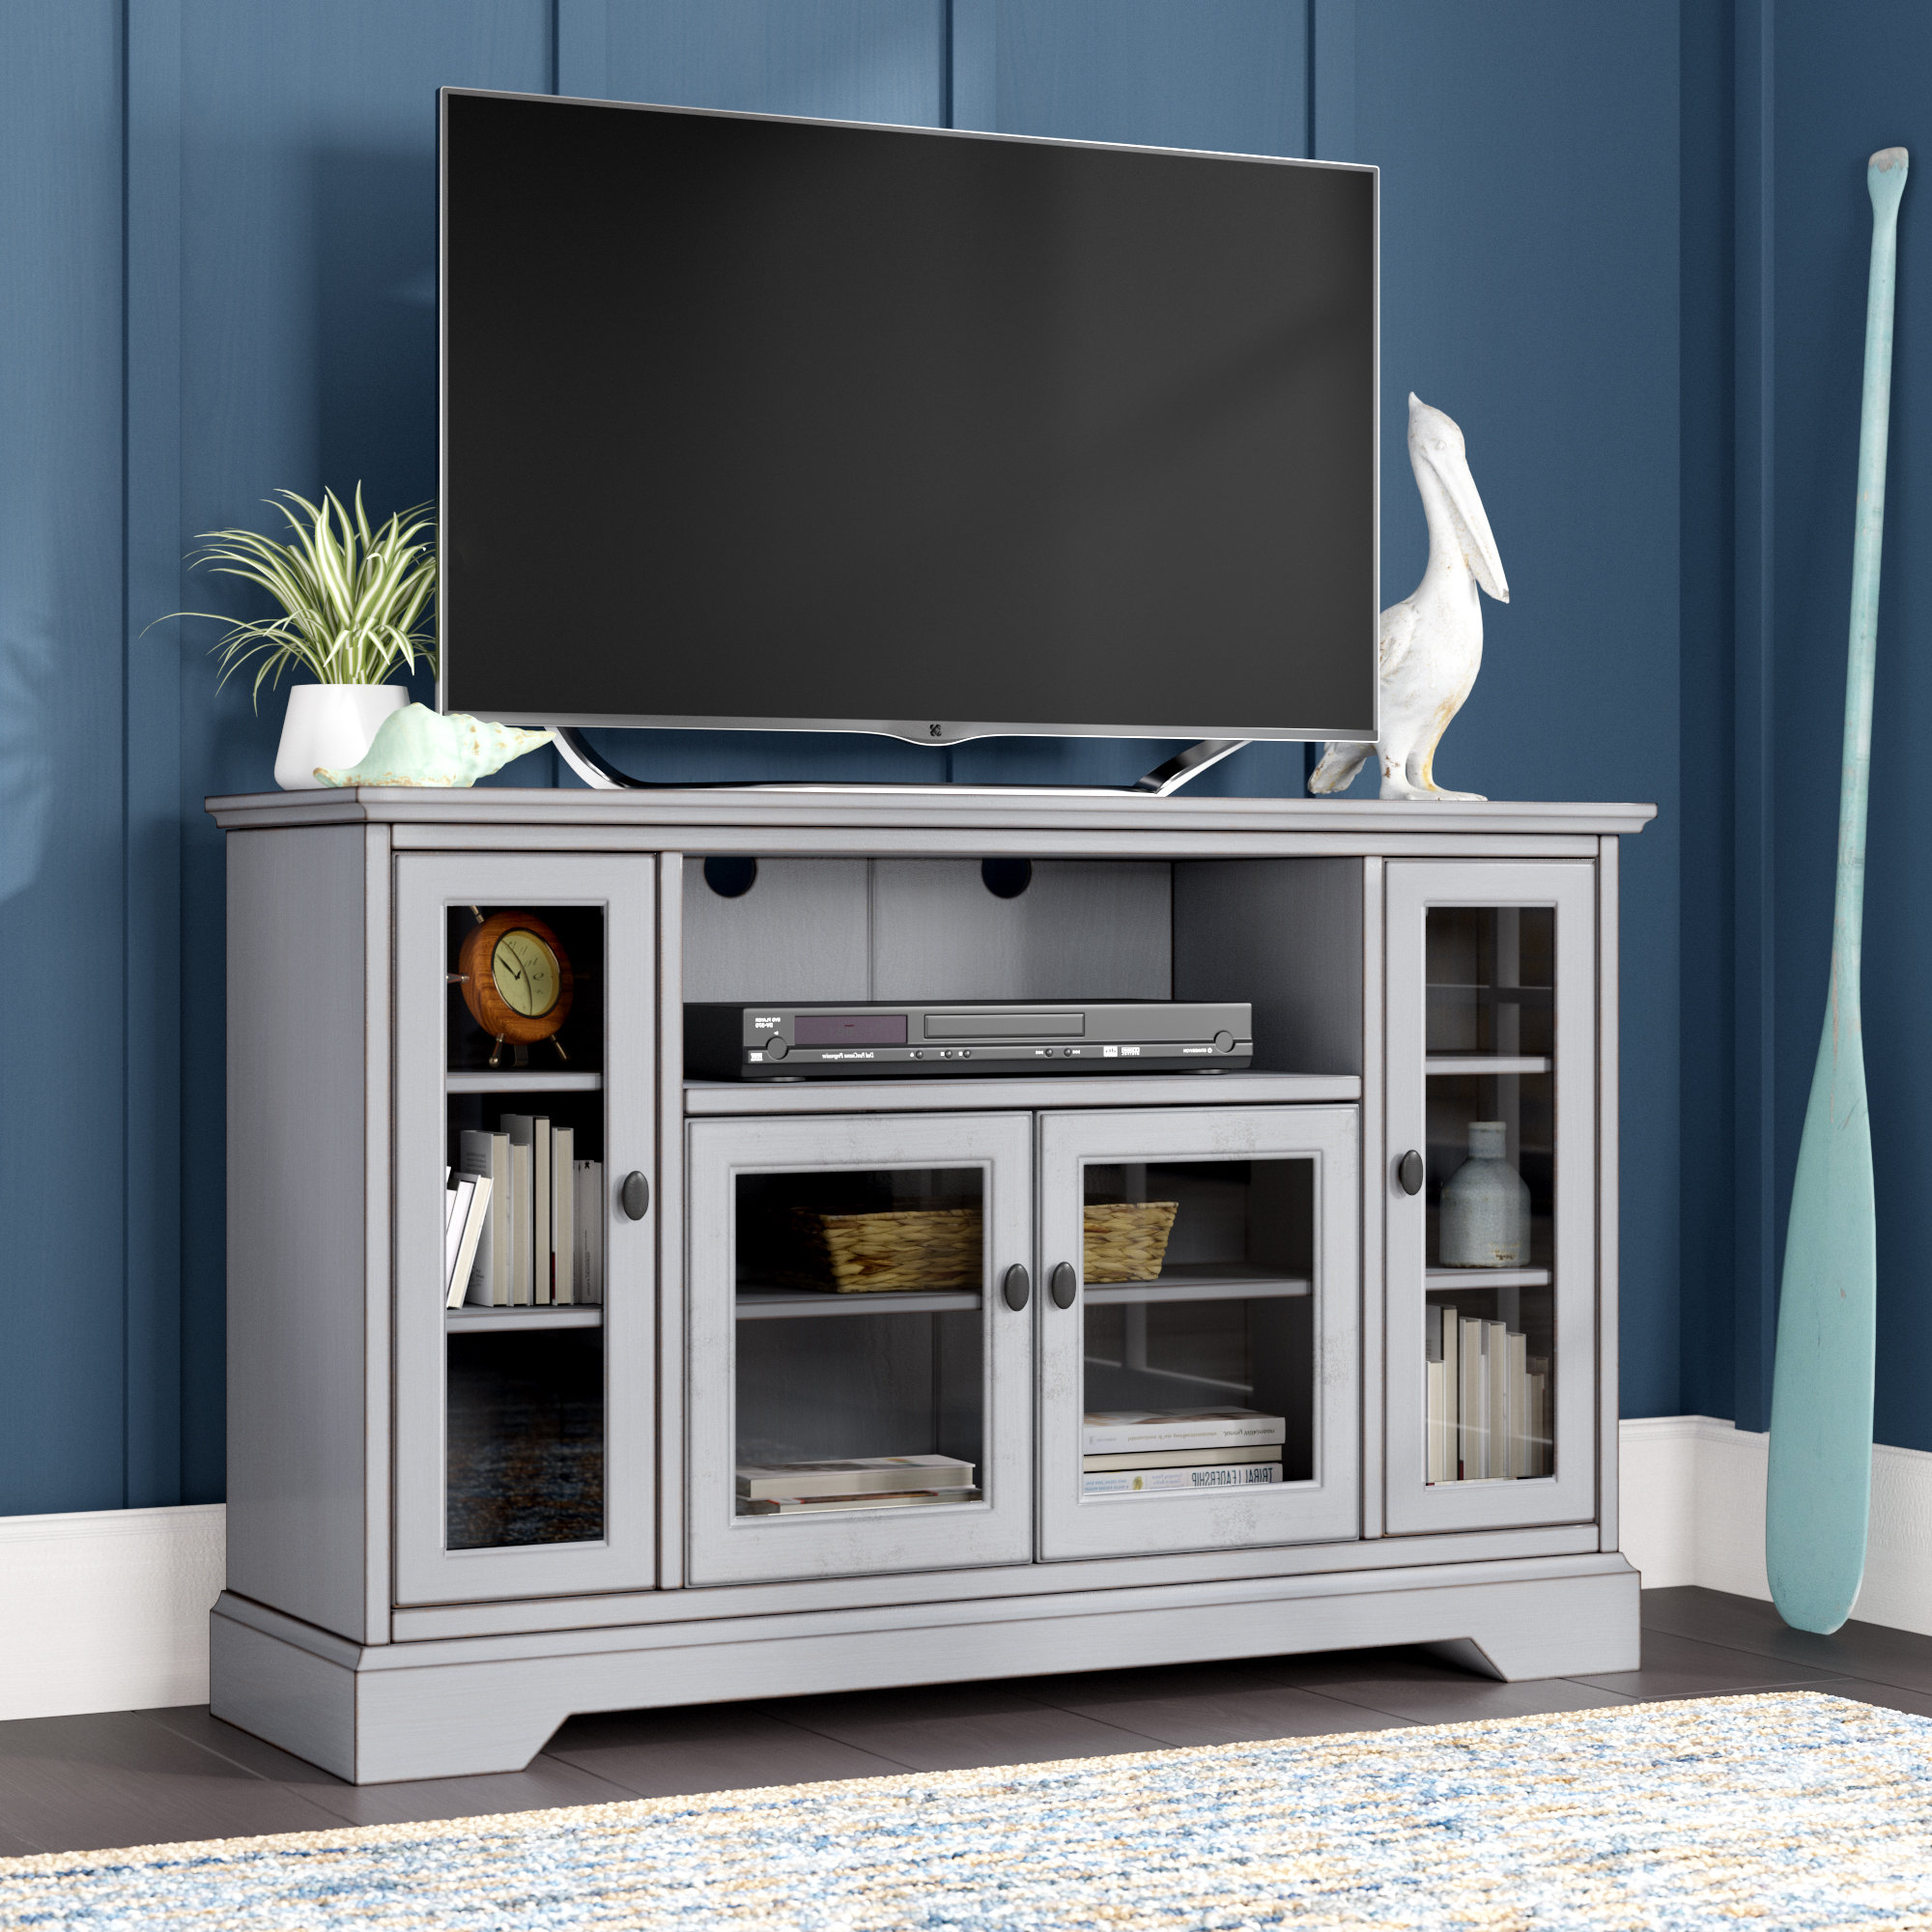 Tall Tv Stands You'll Love | Wayfair For Wyatt 68 Inch Tv Stands (View 11 of 20)